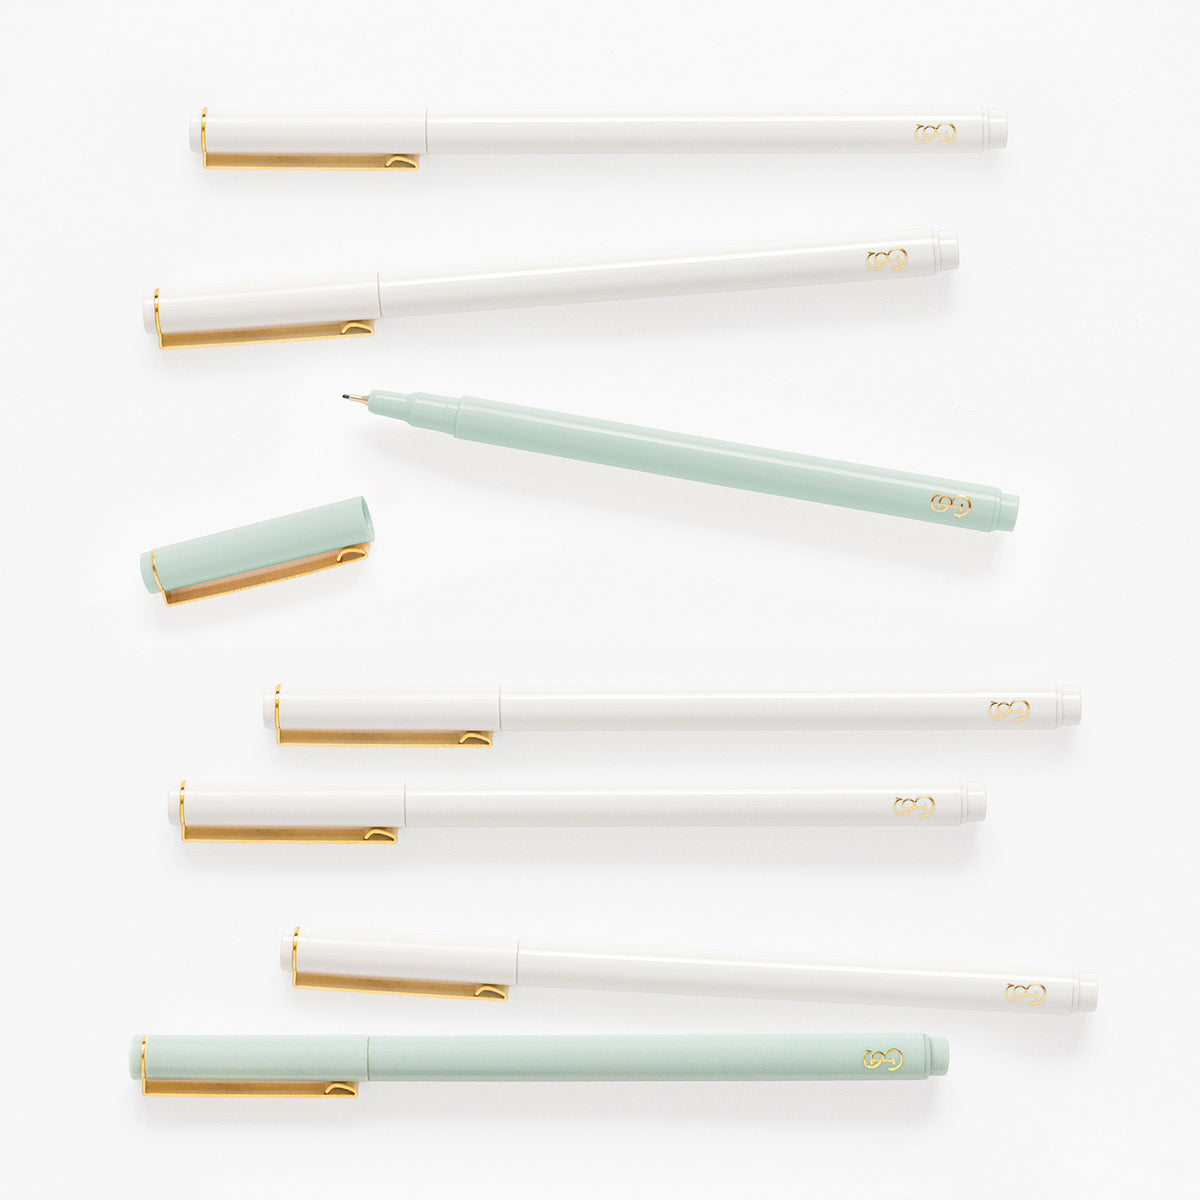 Mint green and white felt tip pens